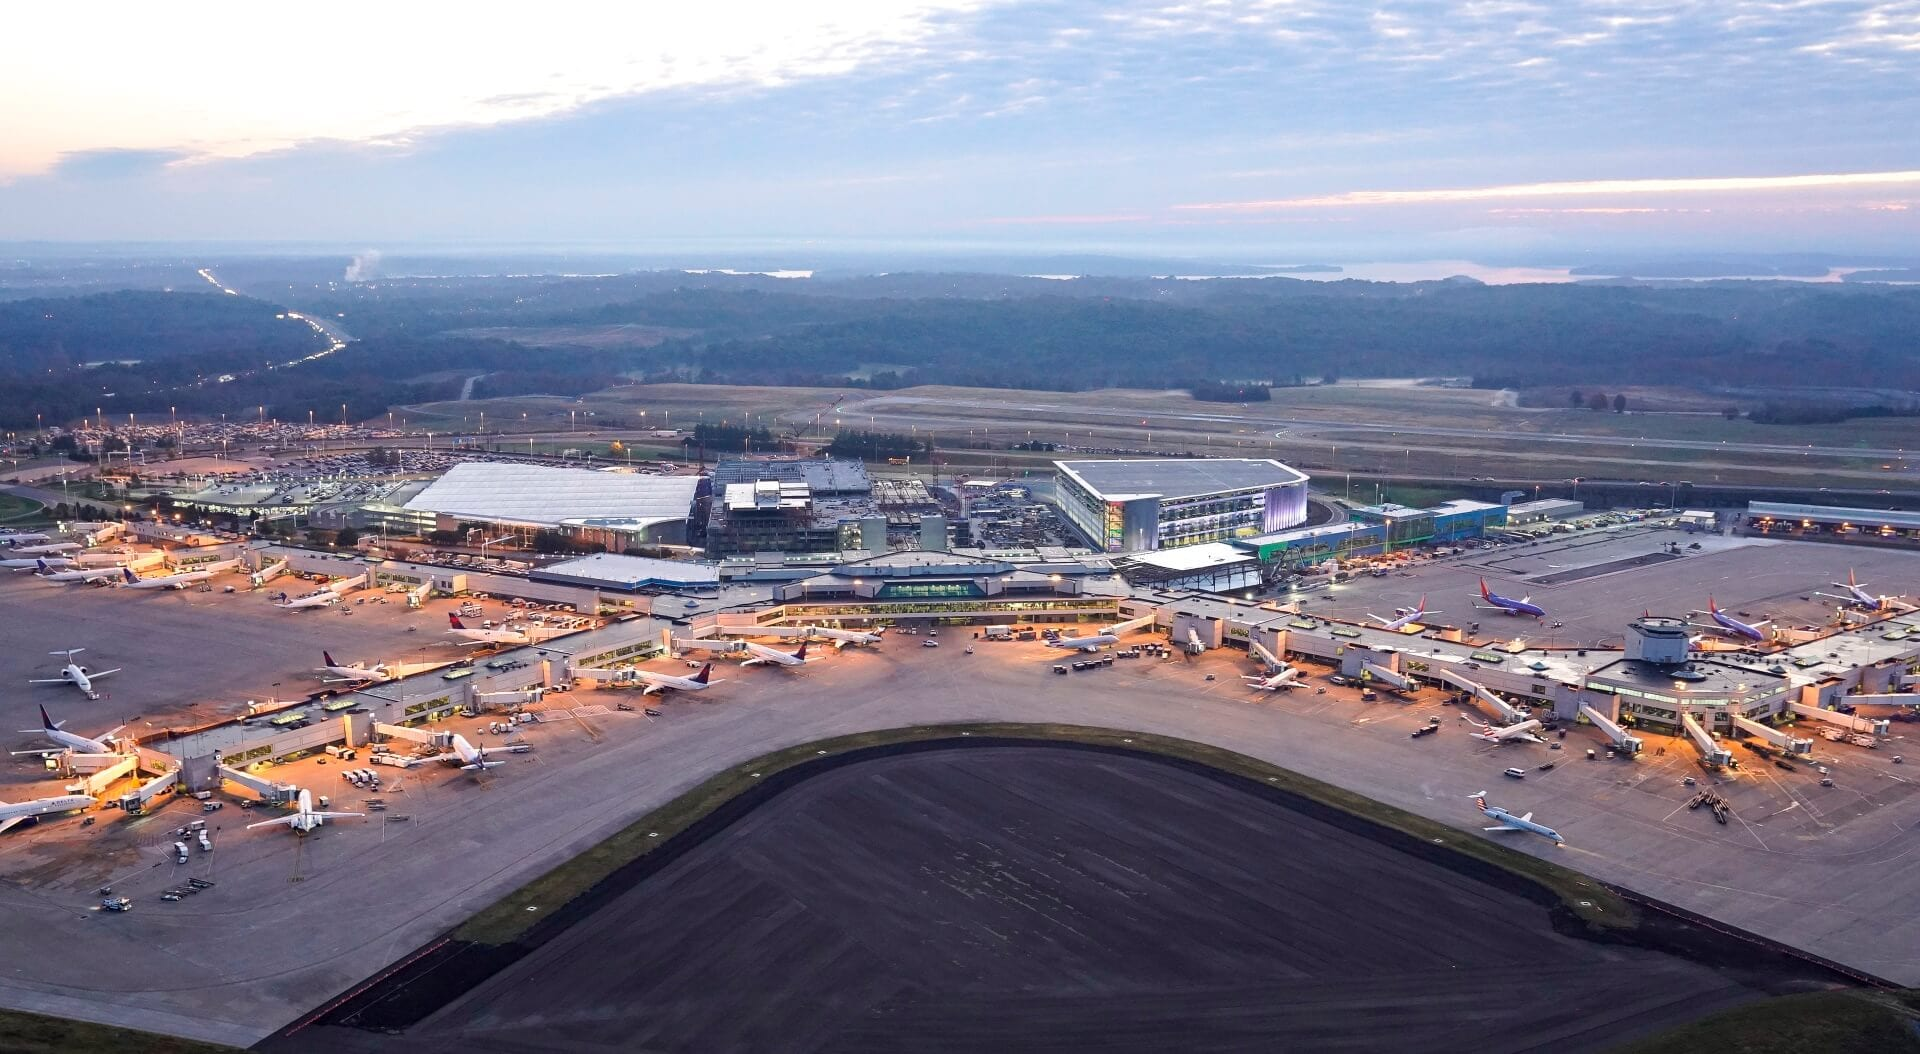 Aerial view of Nashville Airport